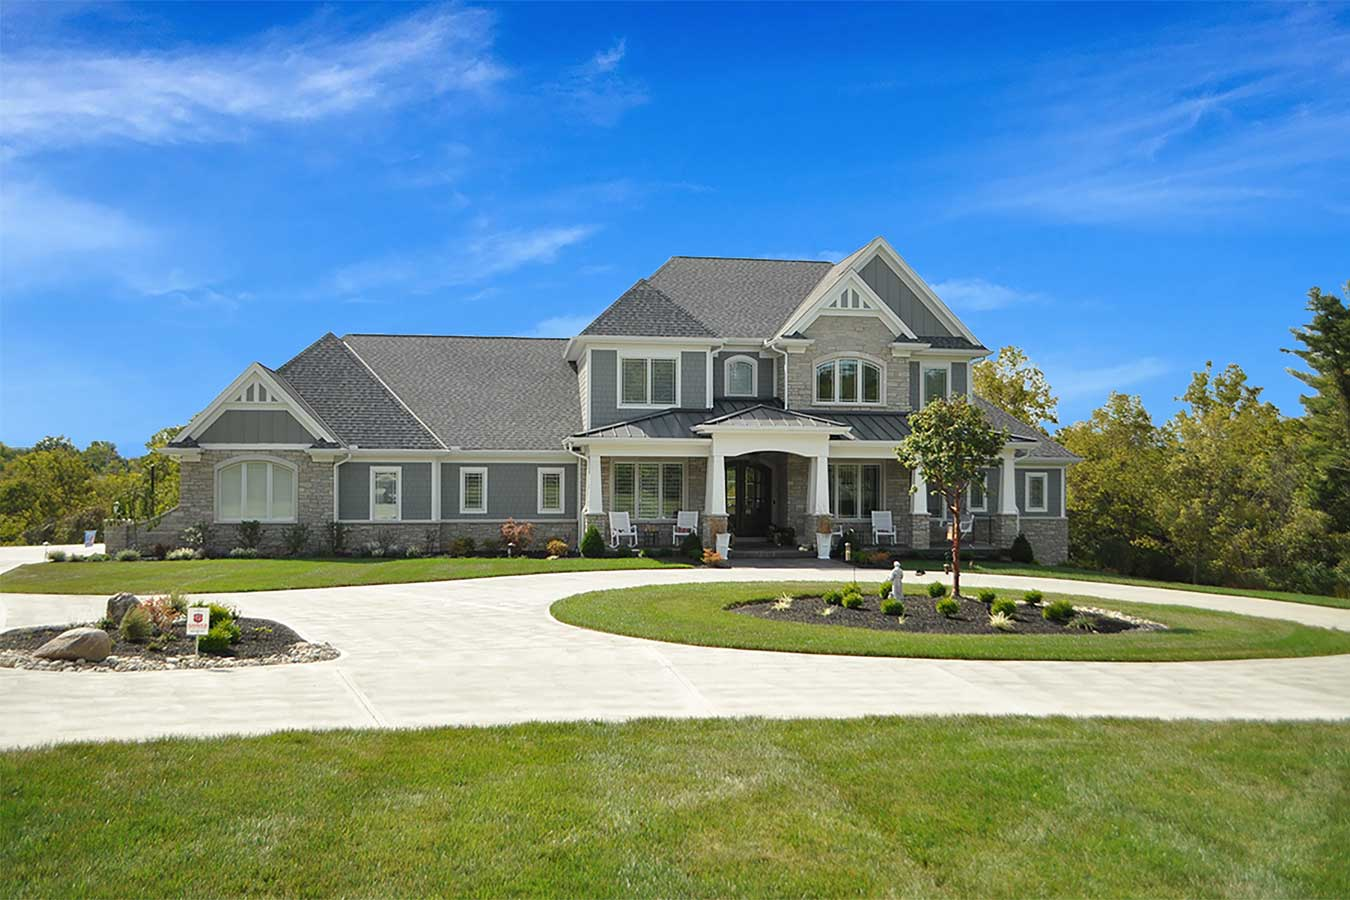 Cincinnati Custom Home Exterior